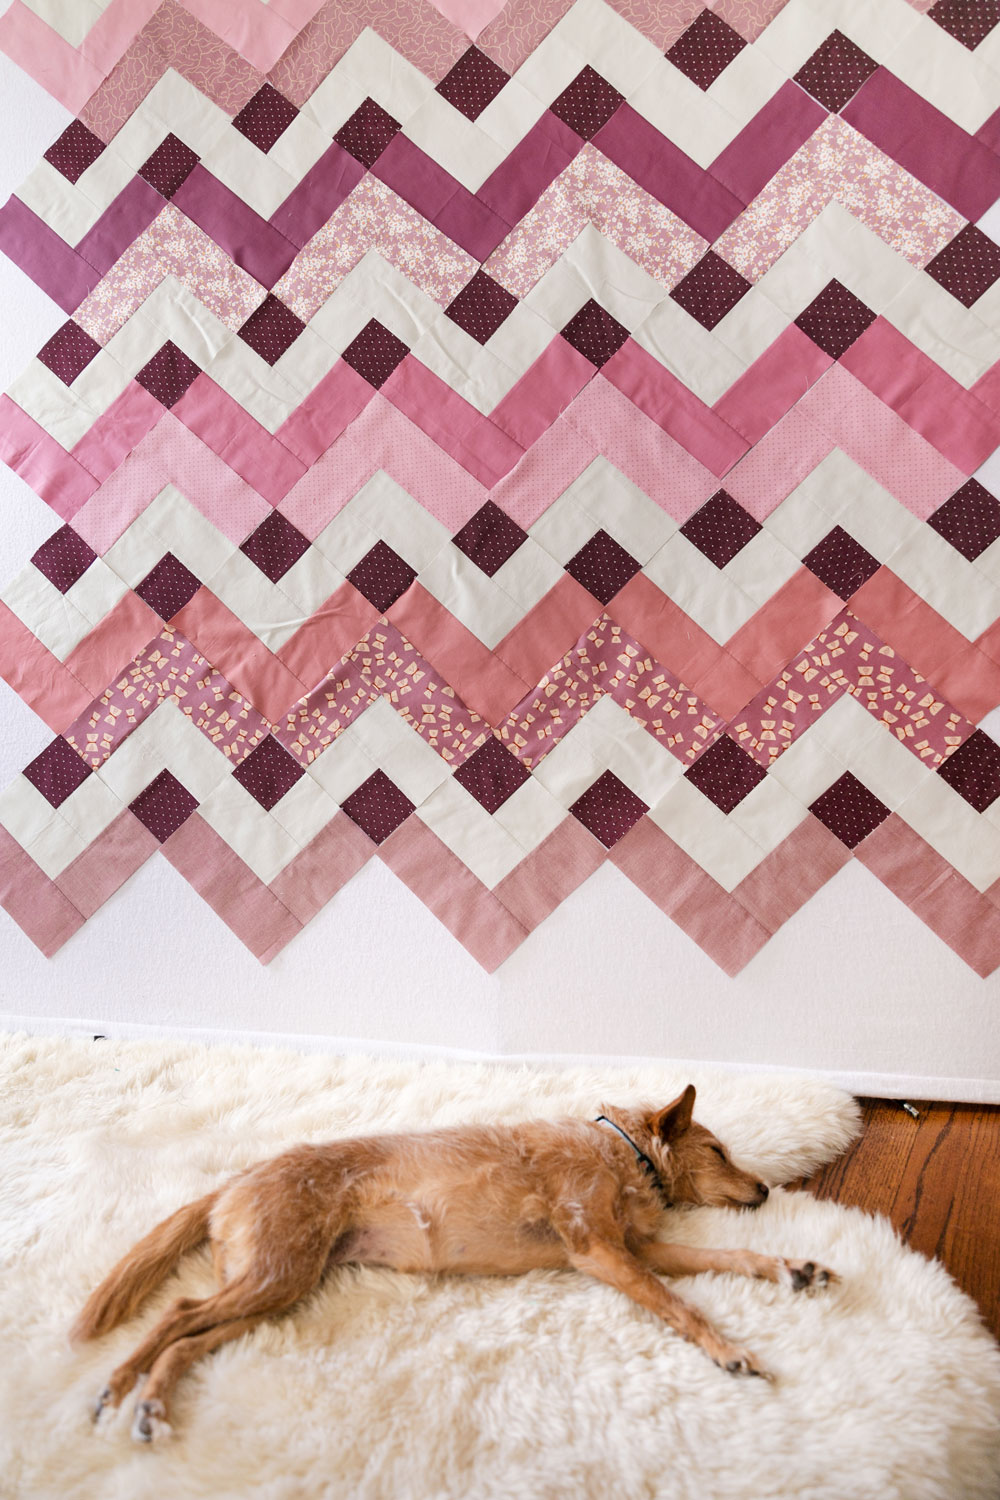 This week in the Thrive sew along we are sewing our blocks into rows. So there's no confusion, I have a video tutorial with directions and tips! suzyquilts.com #quilting #quiltpattern